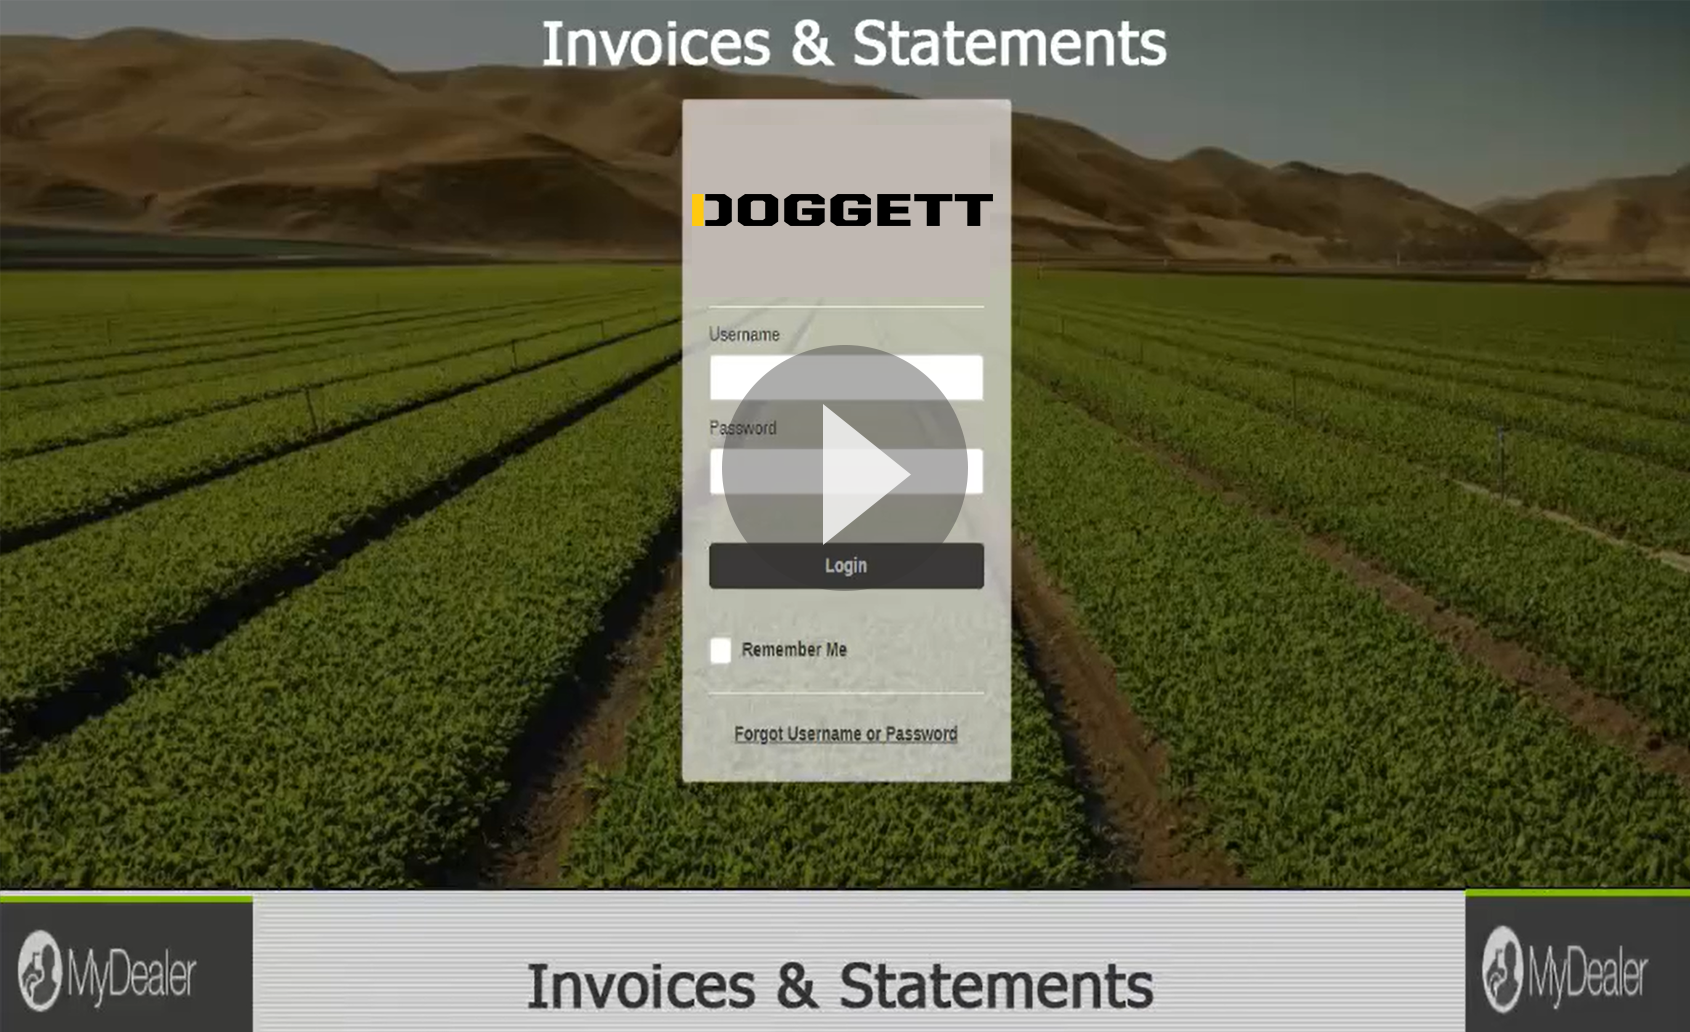 Invoices and Statements on Doggett MyDealer Portal